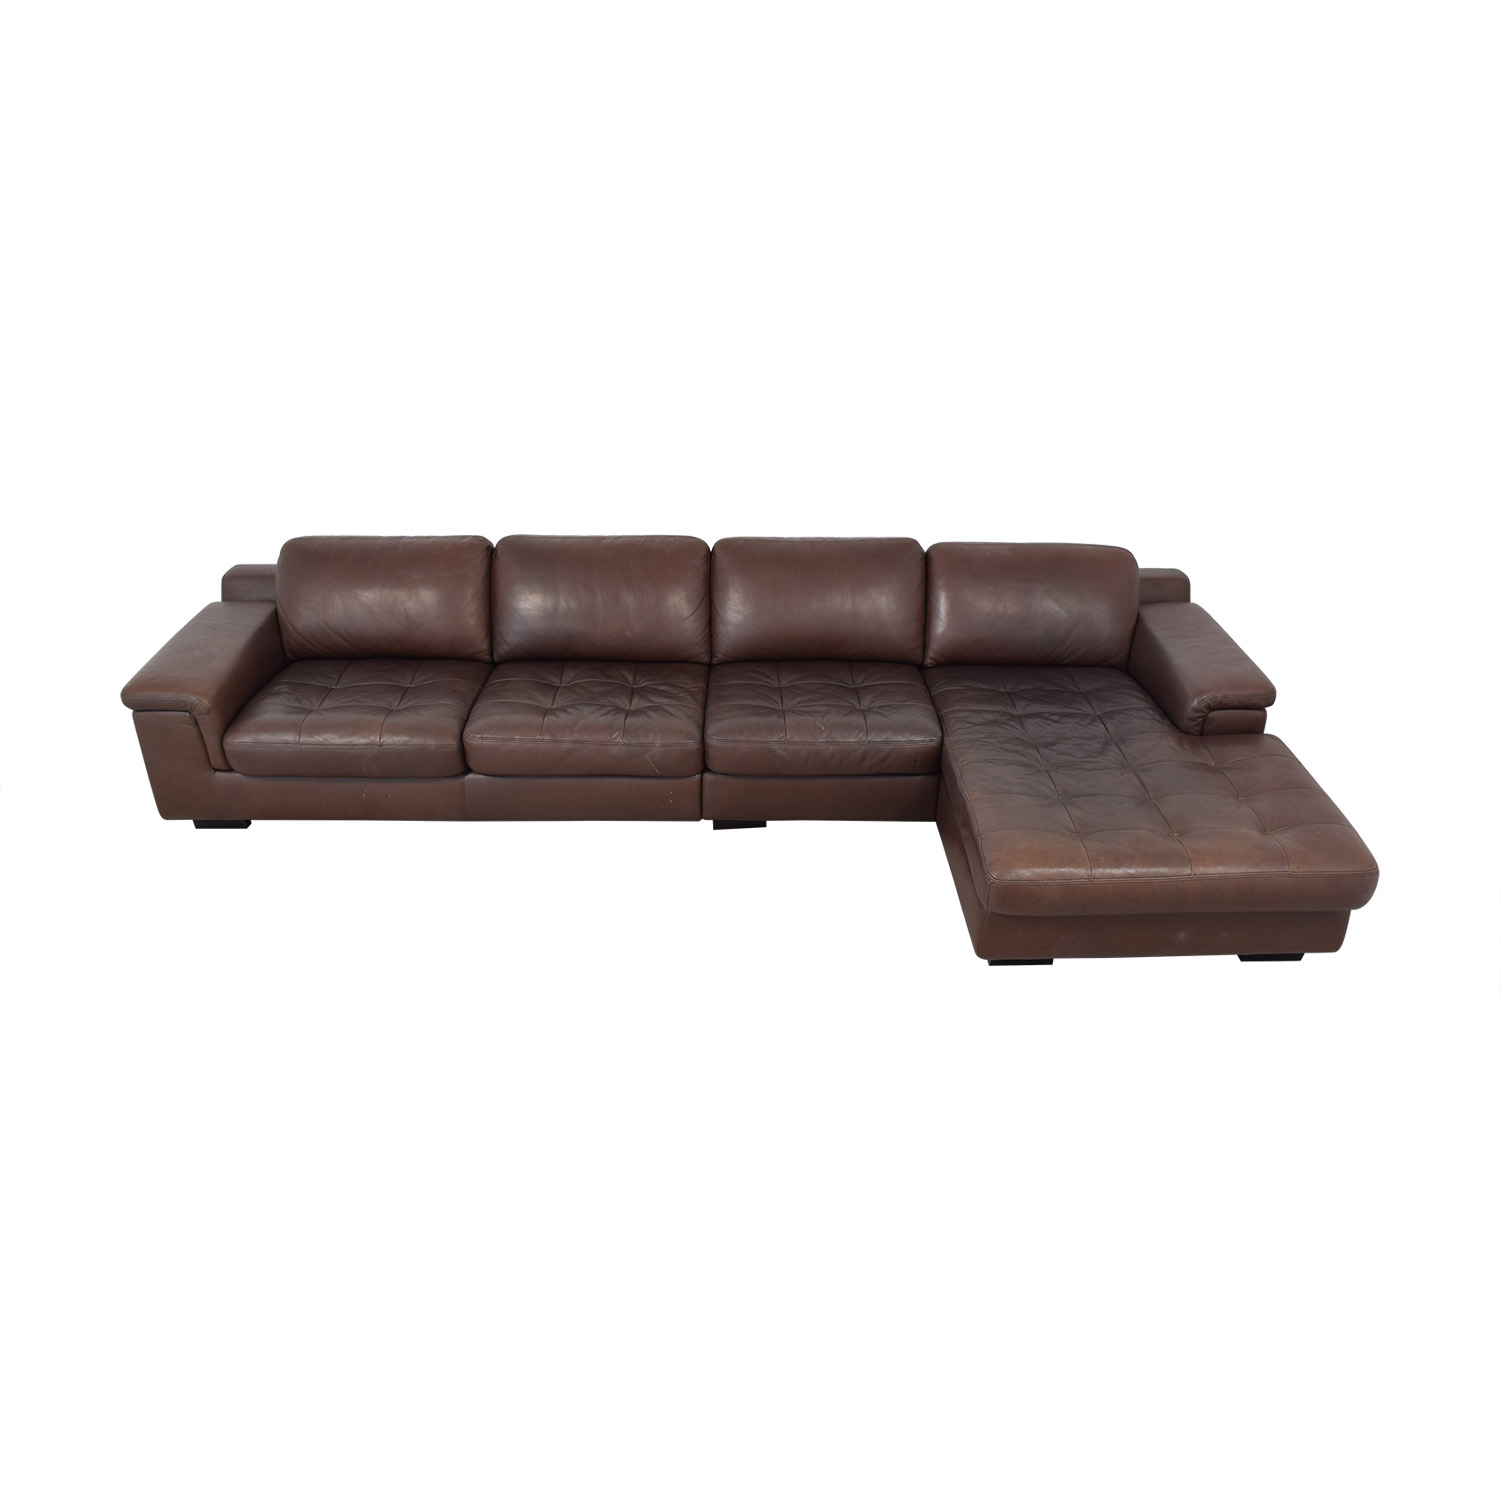 W. Schillig Tufted Sectional sale